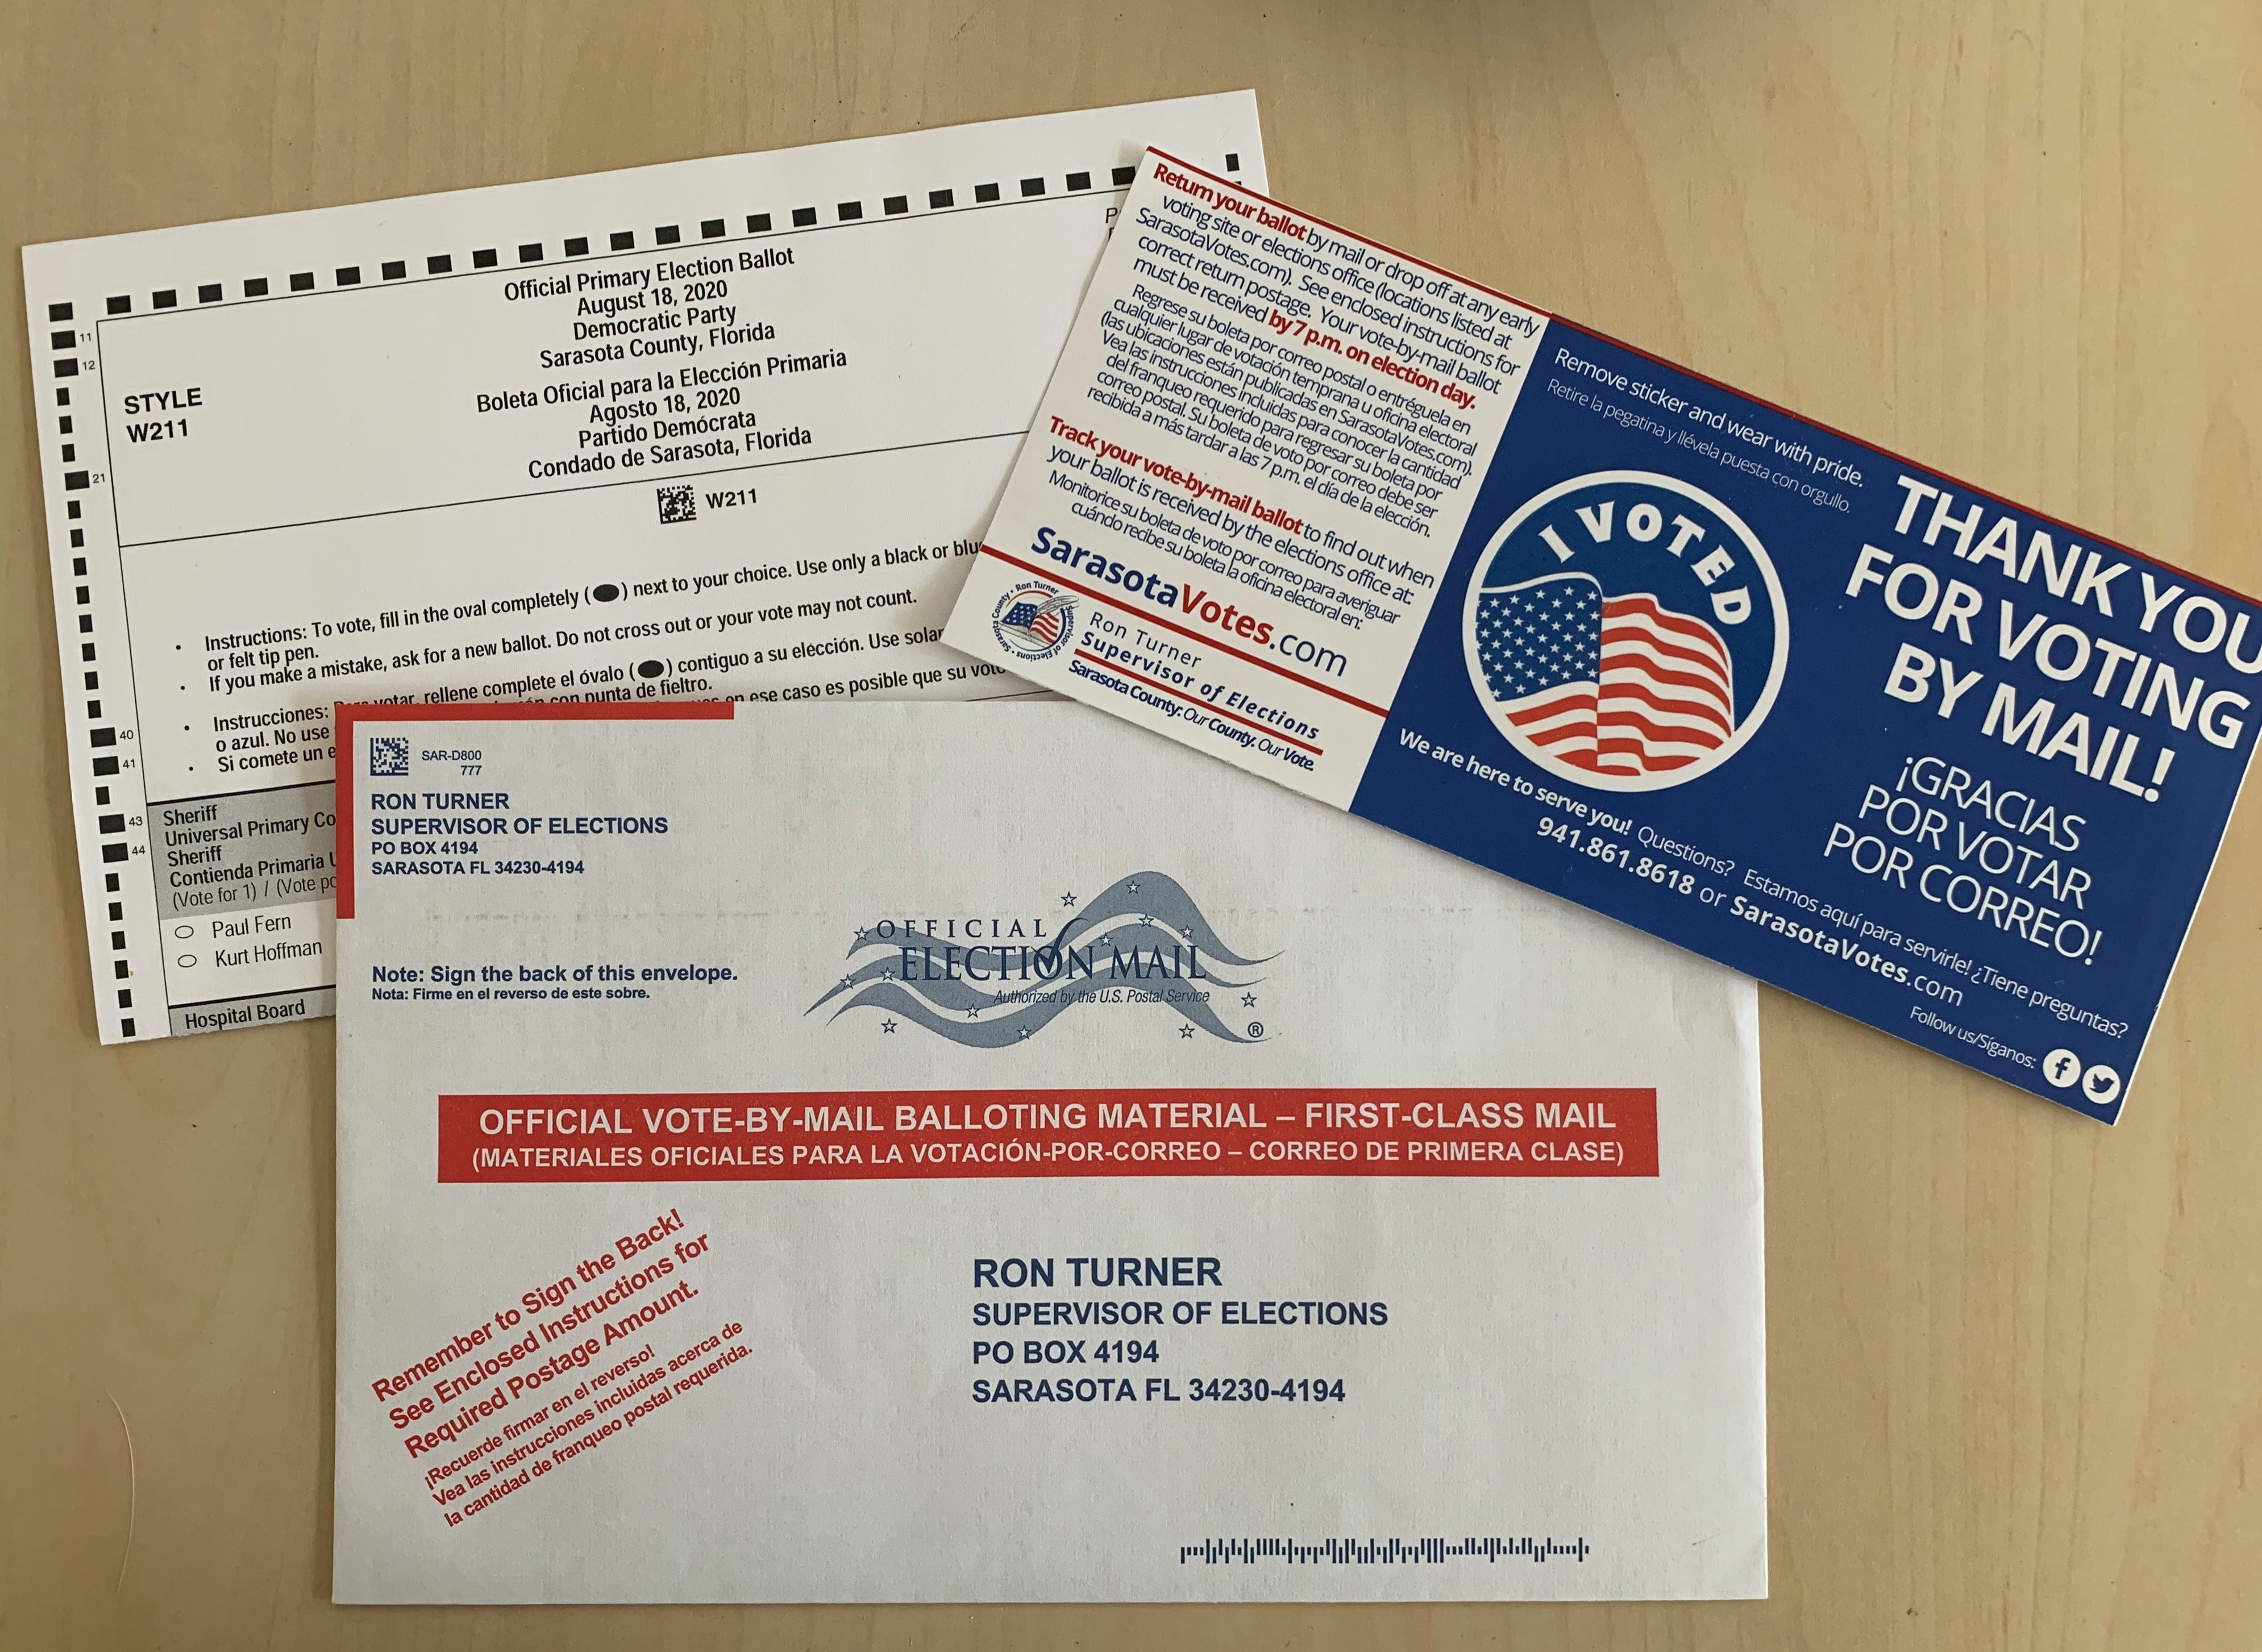 Florida Elections Officials Urge Voters To Return Mail Ballots Quickly